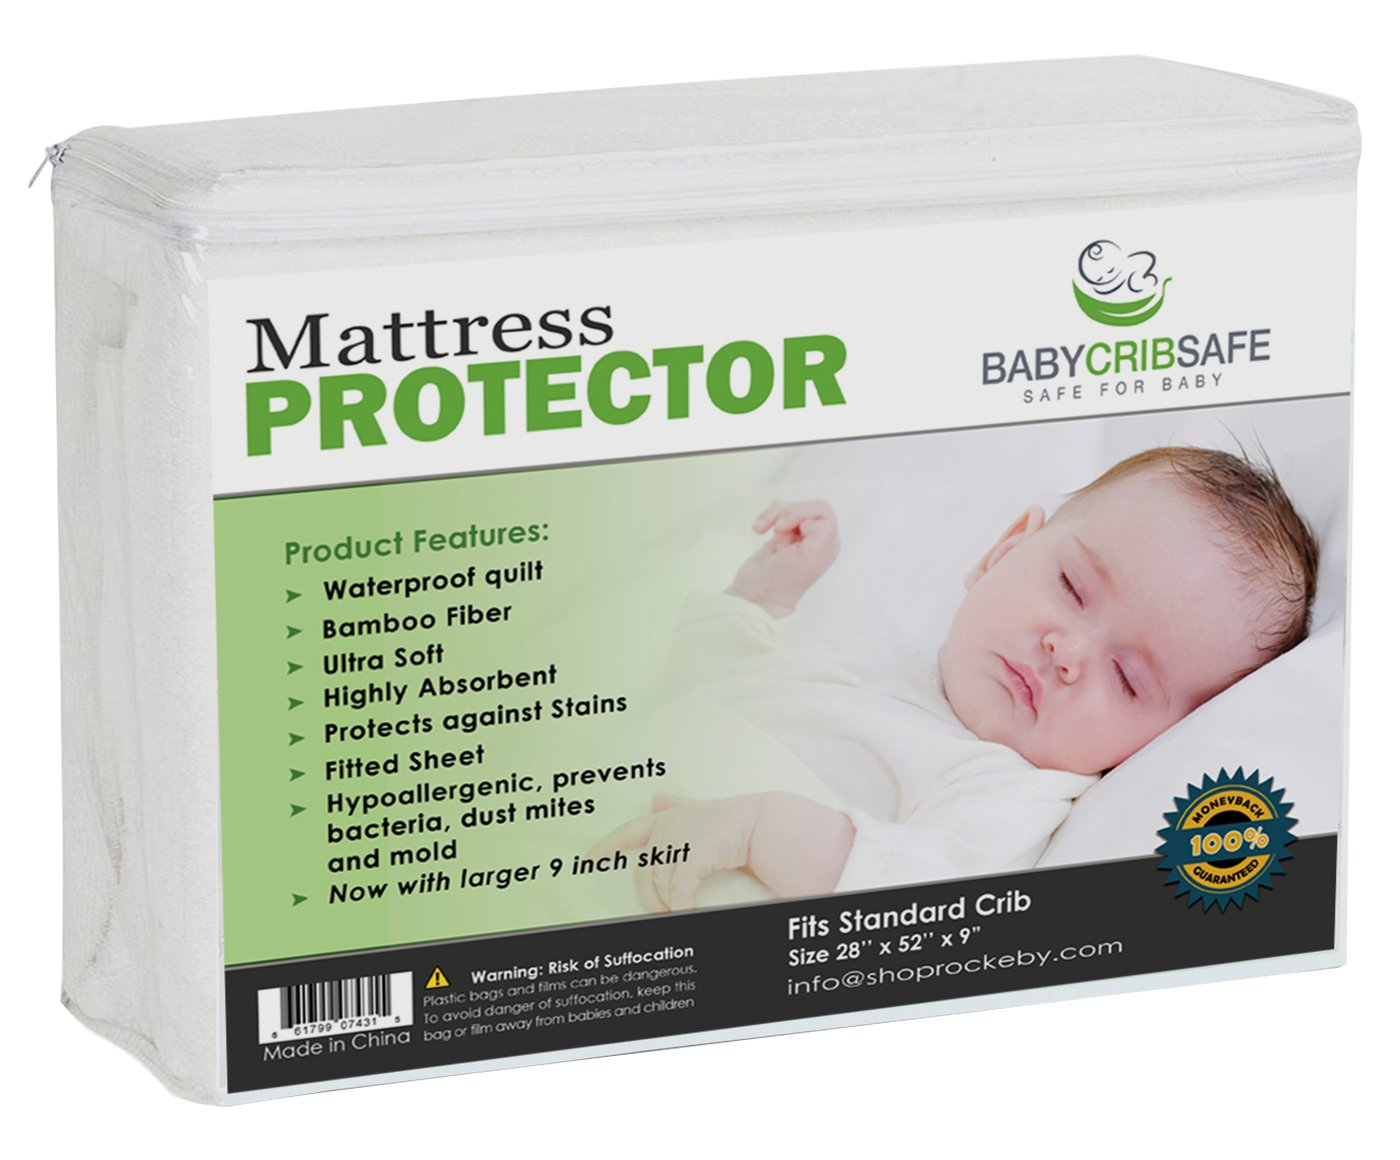 Best Crib Mattress Pad Protector 100% Money Back Guarrantee Large 9 skirt 100% Waterproof Quilted Hypoallergenic Cover is made from Breathable Bamboo Fiber Providing the Softest Touch Stain Resistant Rockeby Road NA